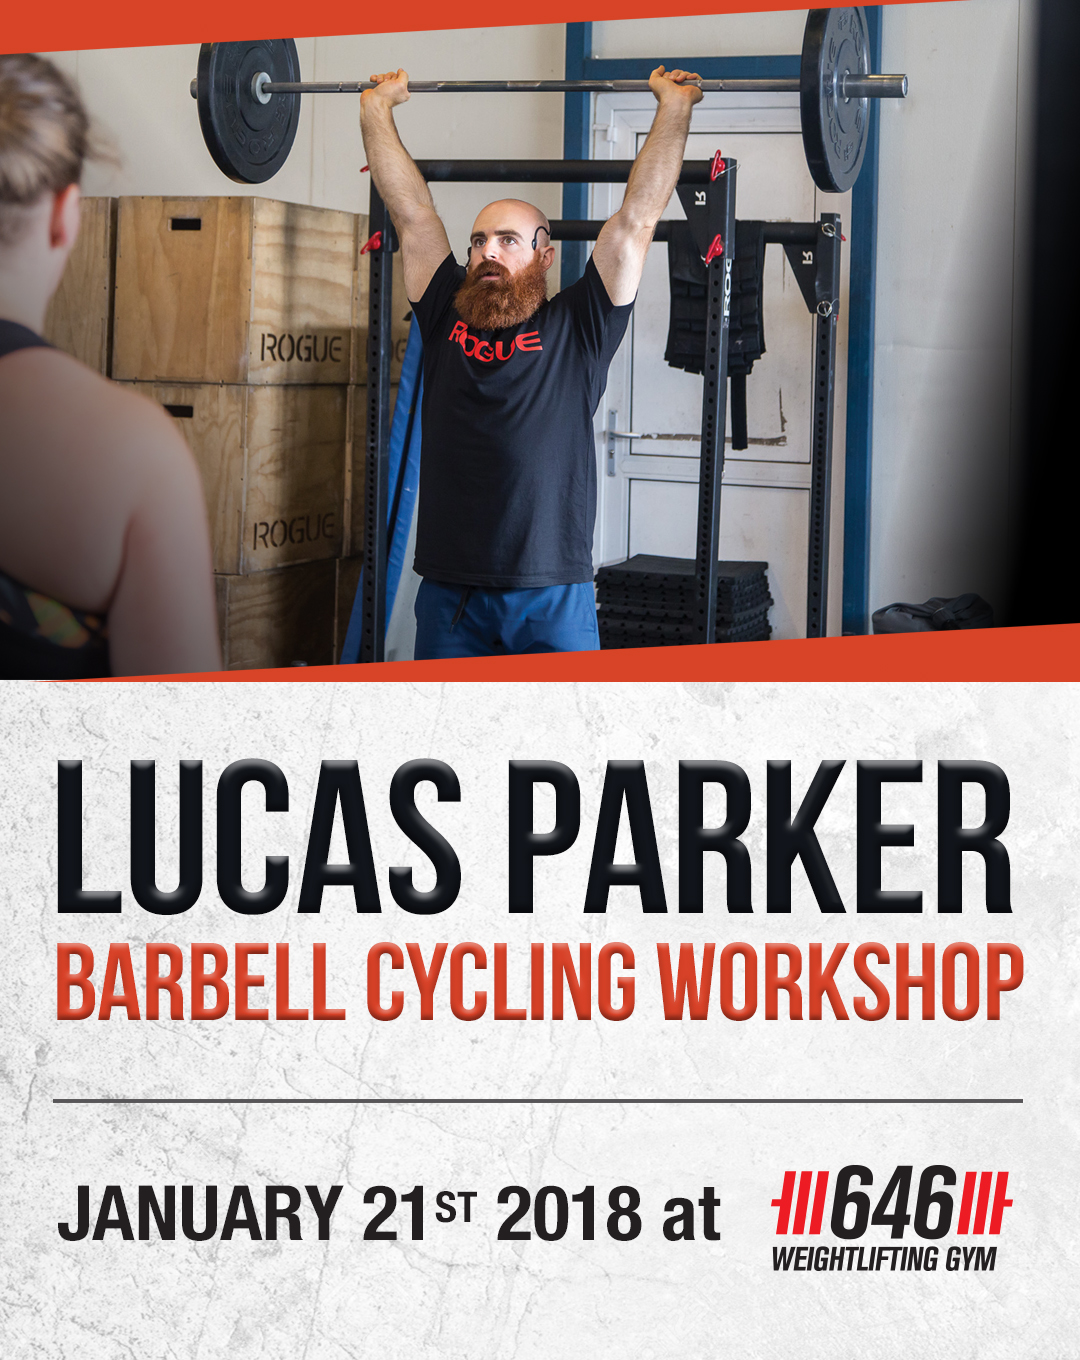 Lucas Parker Barbell Cycling Workshop - 646 Weightlifting